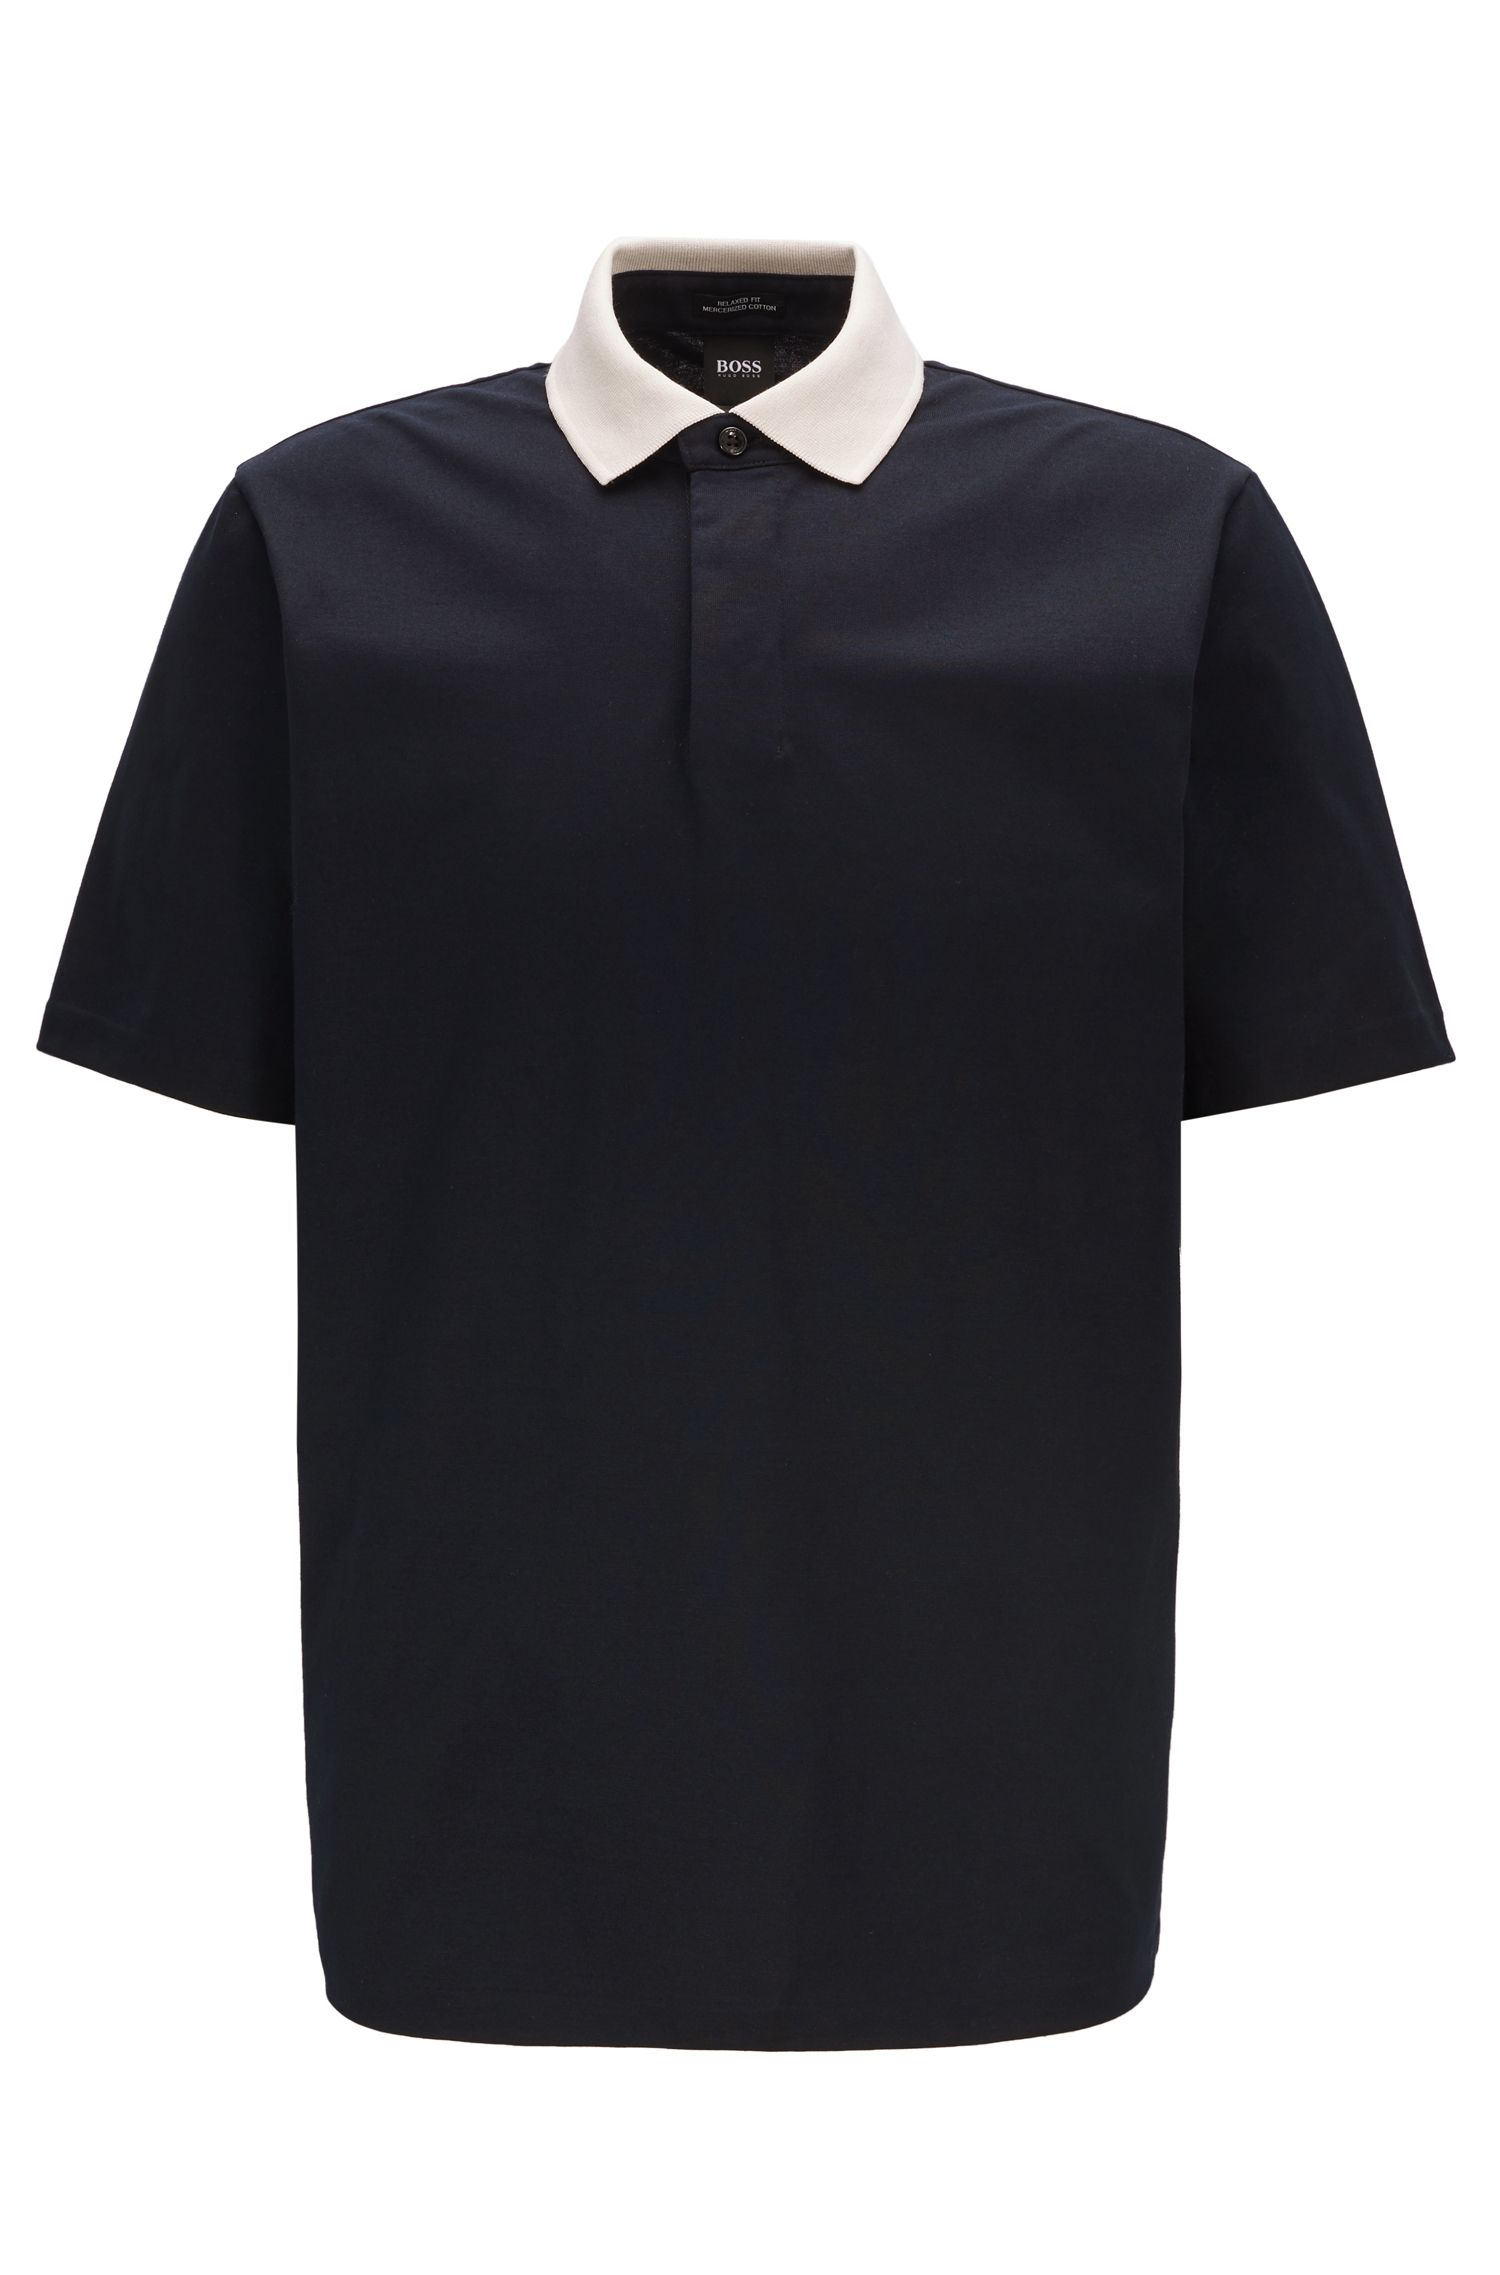 Contrast collar polo shirt in luminex cotton jersey, Dark Blue